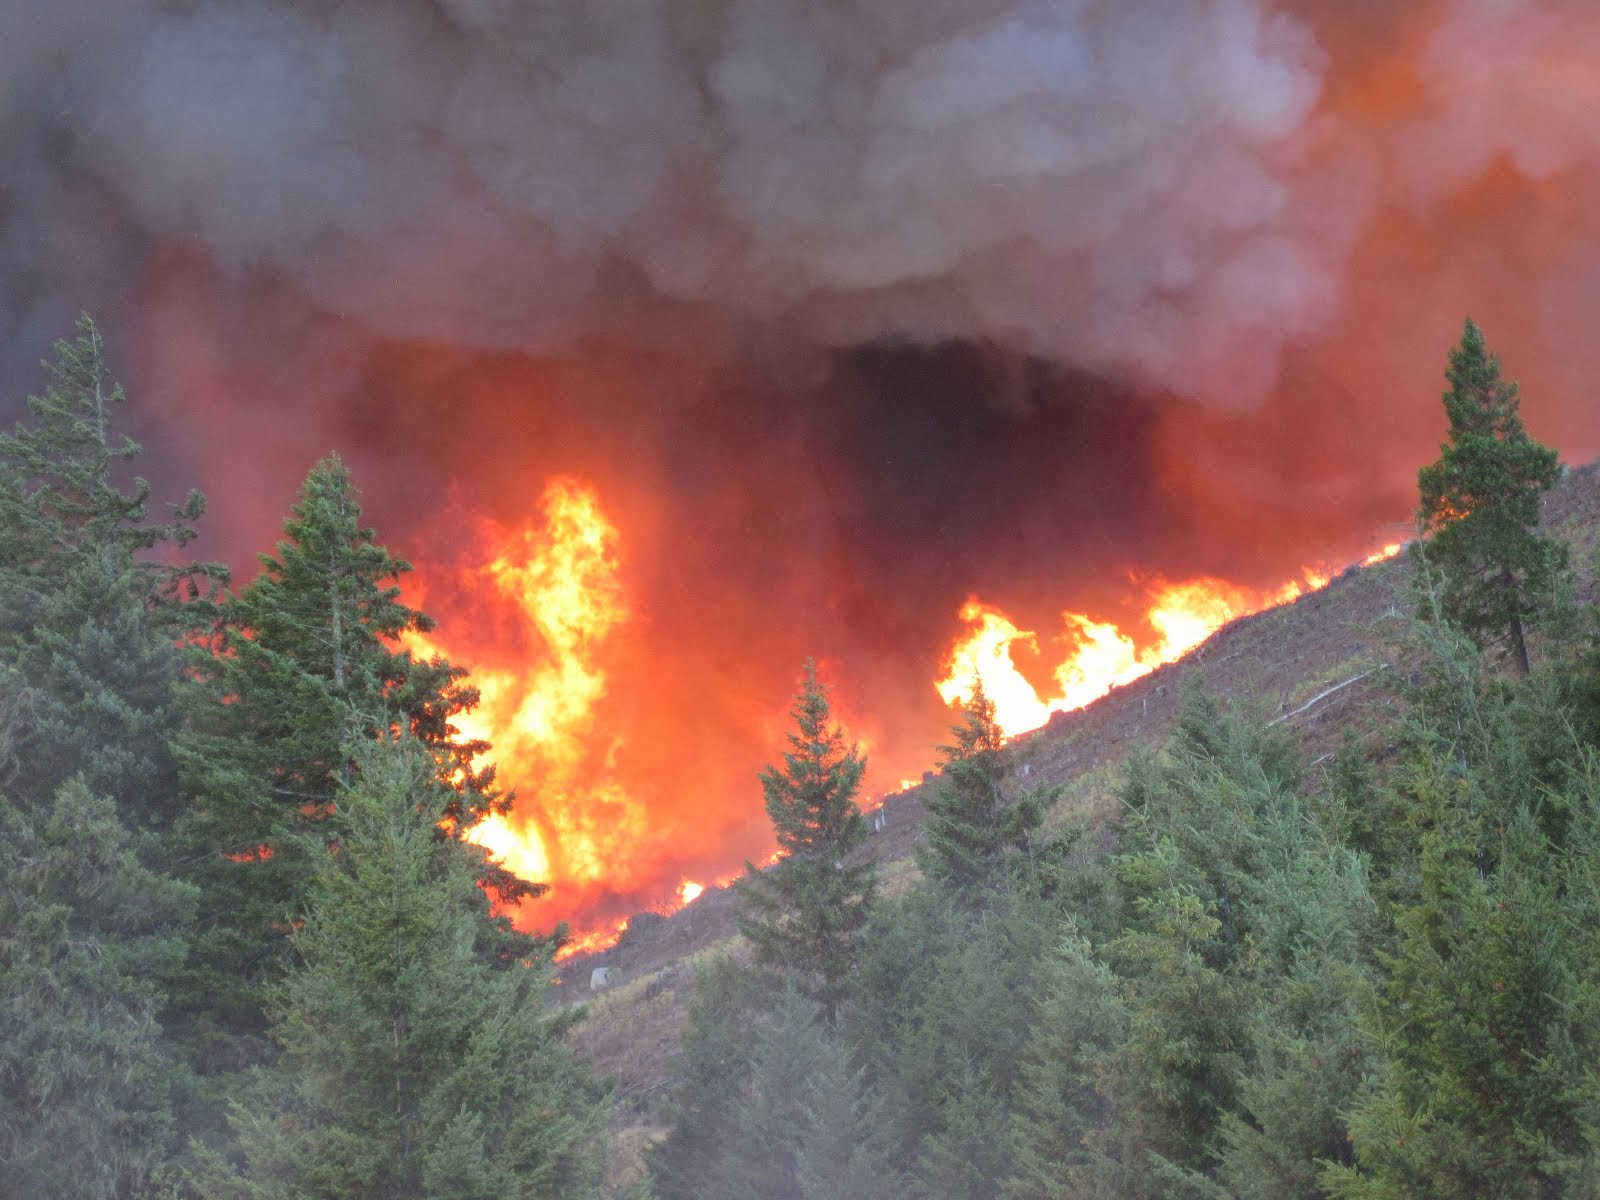 2013 fire season fact sheet available